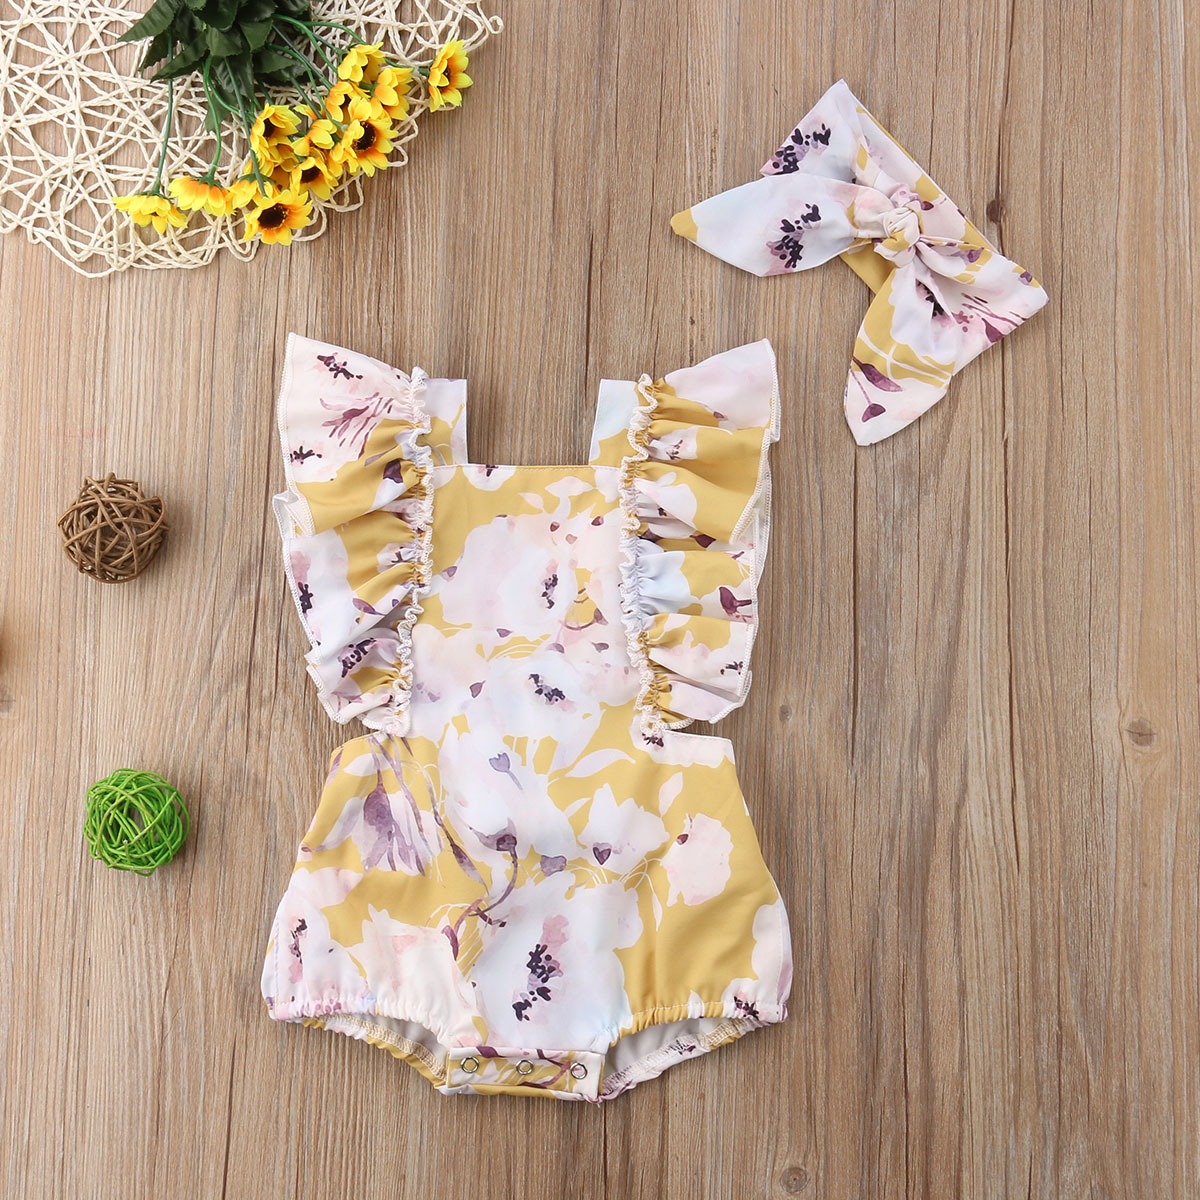 Newborn Baby Girls Butterfly sleeve Romper Headband Set Infant Outfits Clothes Newborn Baby Girls Butterfly sleeve Romper+Headband Set Infant Outfits Clothes